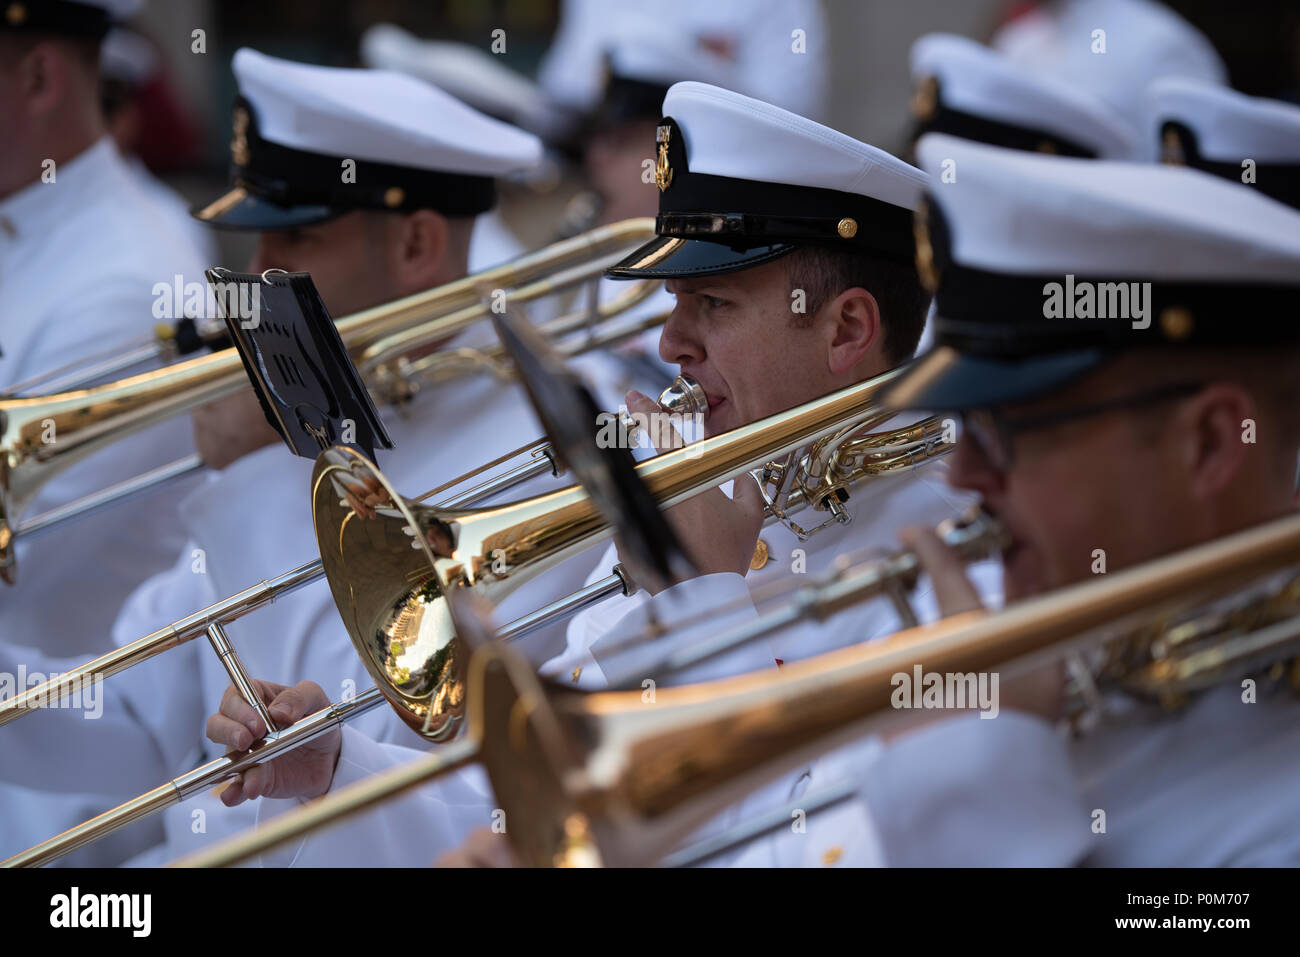 180605-N-HG258-1036 WASHINGTON (June 5, 2018) Musician 1st Class Ken Moses, trombone instrumentalist with the U.S. Navy Ceremonial band performs at the U.S. Navy Memorial in Washington, D.C., during the commemoration of the 76th anniversary of the Battle of Midway. The Battle of Midway began on June 4 in 1942 and stands as one of the U.S. Navy's most historically significant naval battles. Fought on the high seas of the Pacific more than half a century ago, this battle altered the course of the war in the Pacific and thereby shaped the outcome of world events. (U.S. Navy photo by Senior Chief  - Stock Image